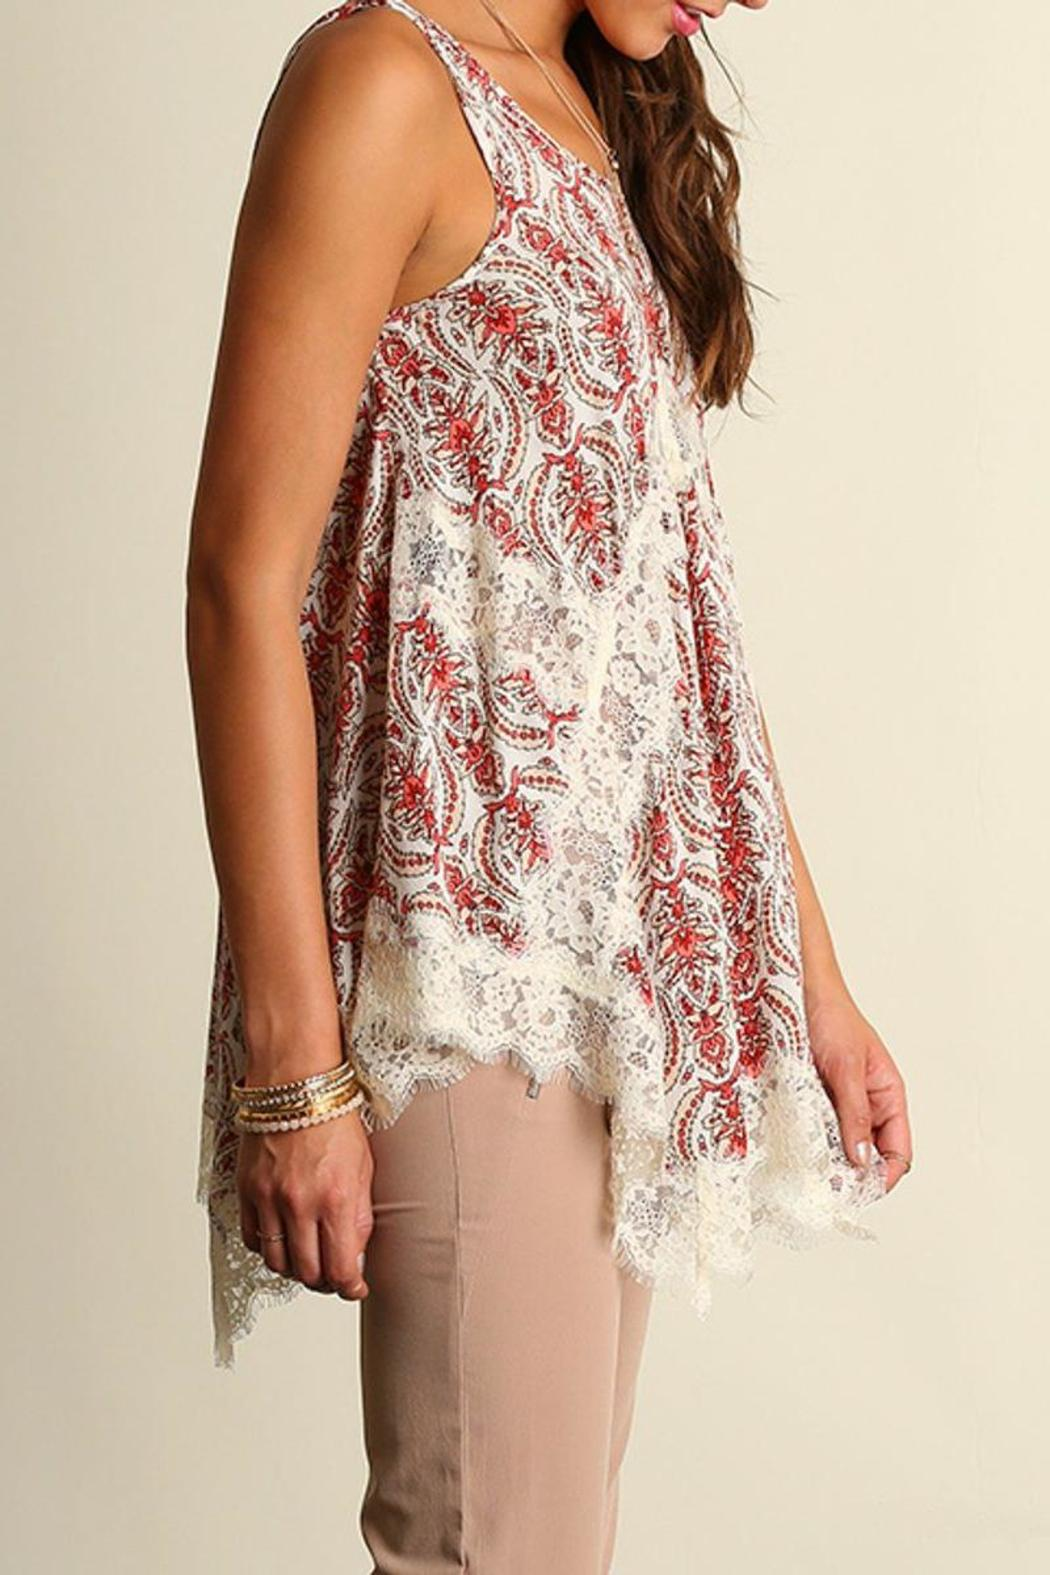 The Dressing Room Lace Coral Top - Side Cropped Image